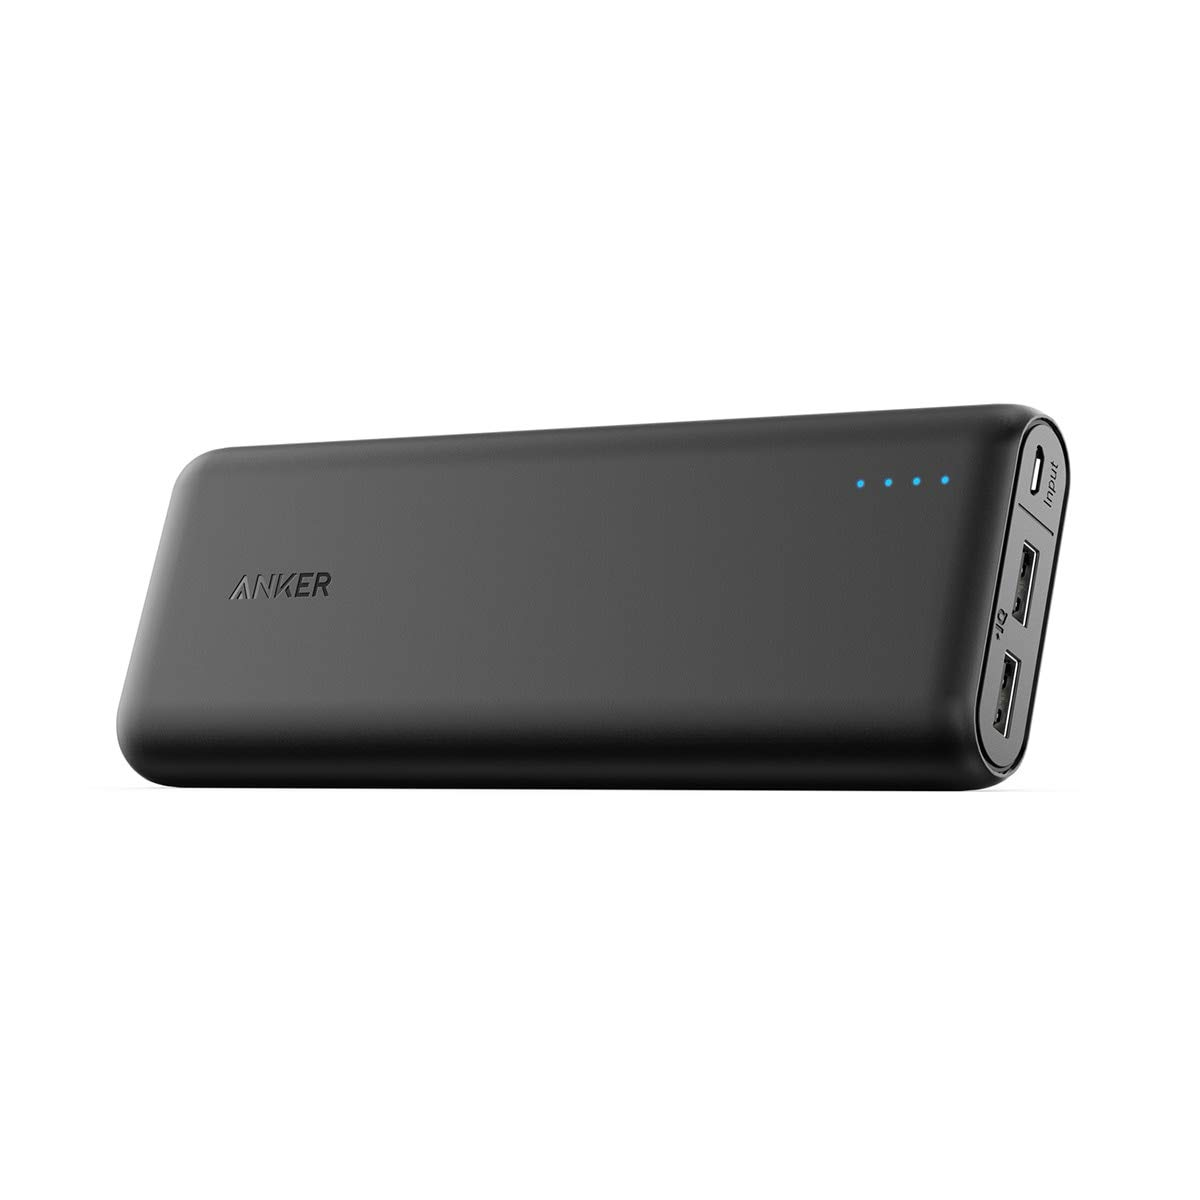 Anker PowerCore Portable Charger 15600mAh with 4.8A Output, PowerIQ and VoltageBoost Technology, Power Bank for iPhone iPad and Samsung by Anker